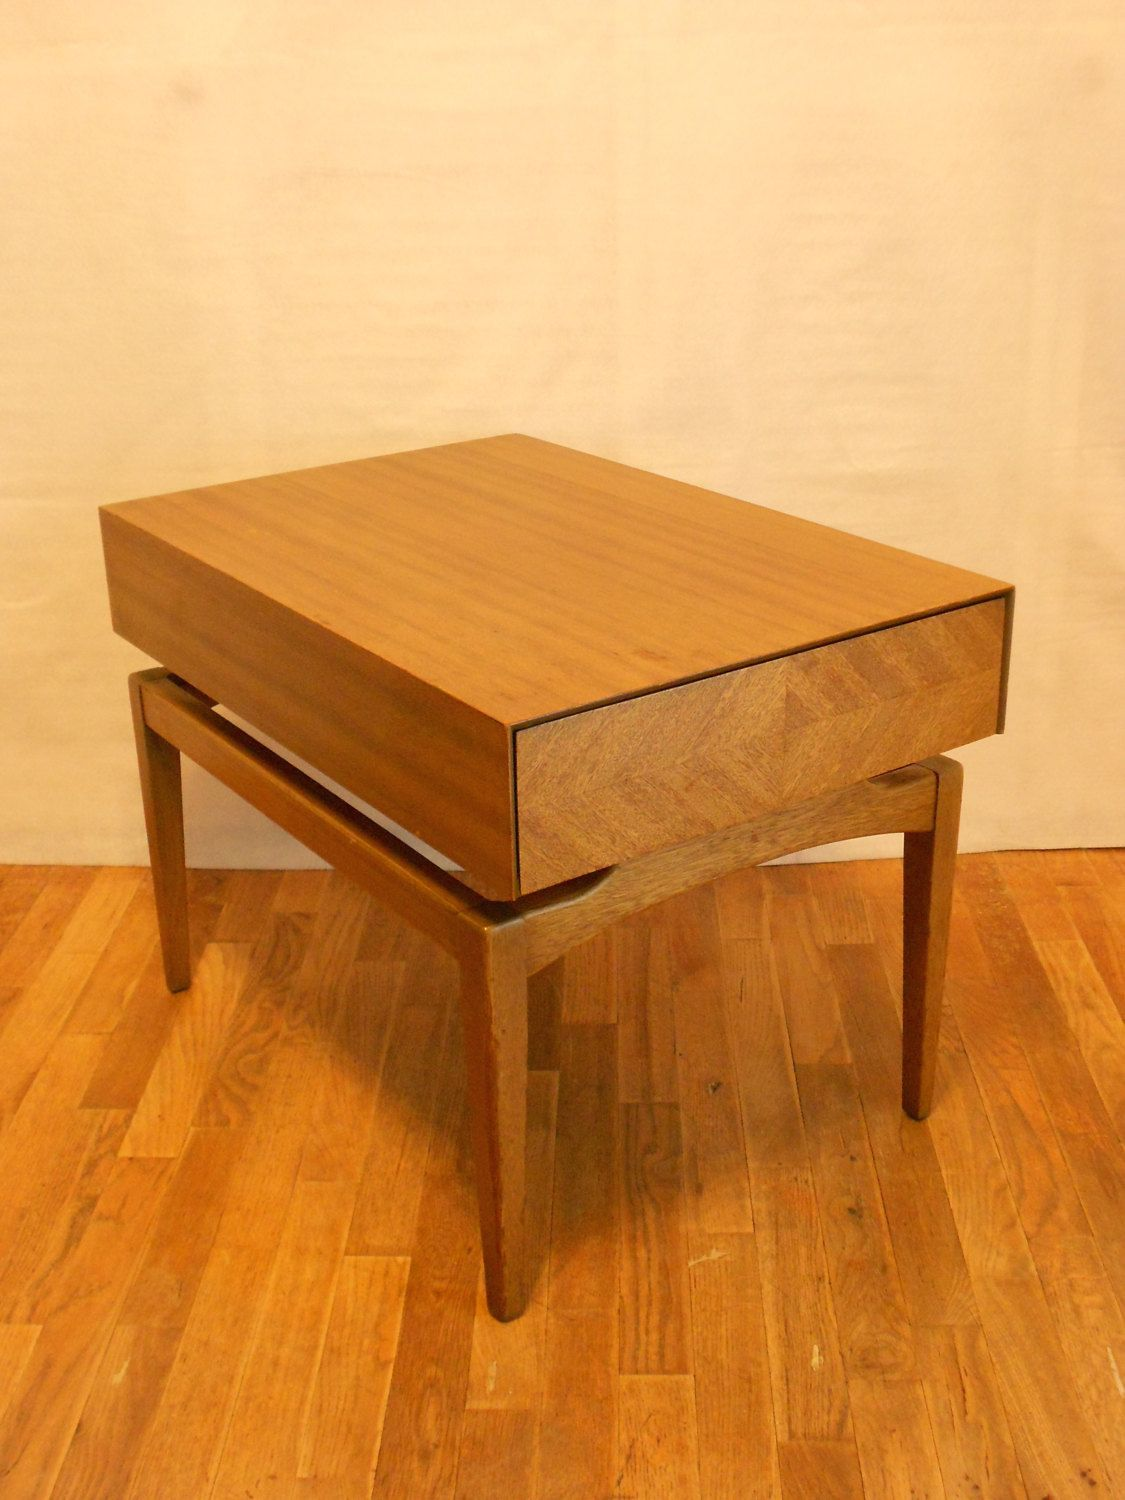 Mahogany Side Tables By John Keal For Brown Saltman Pair By SkieShop On  Etsy Https